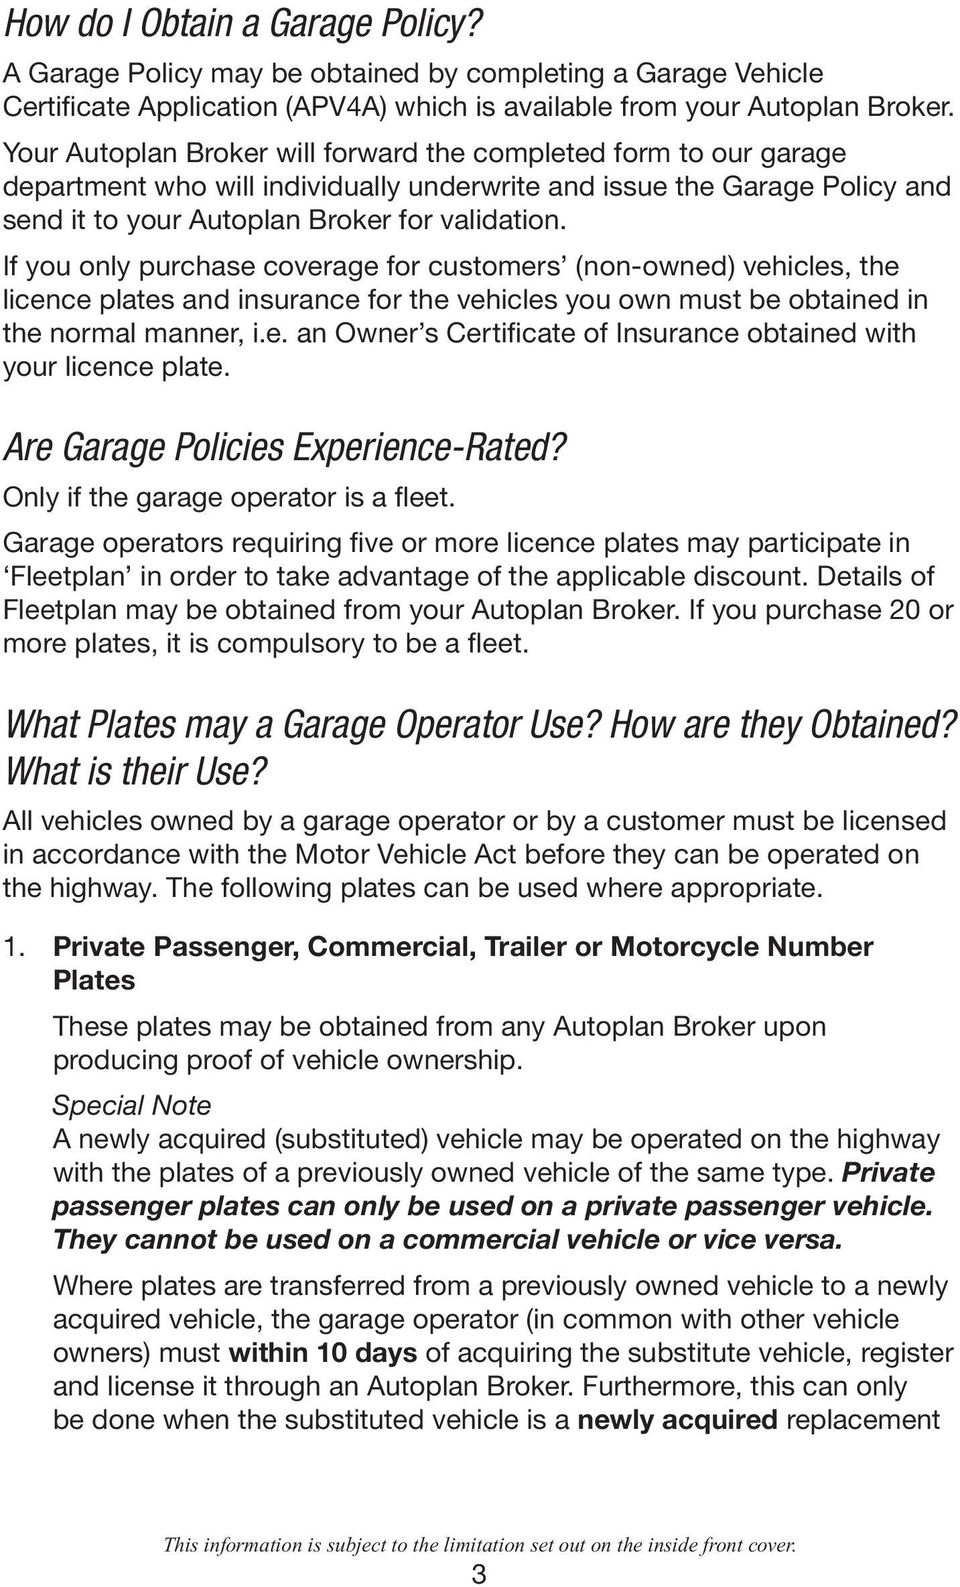 If you only purchase coverage for customers (non-owned) vehicles, the licence plates and insurance for the vehicles you own must be obtained in the normal manner, i.e. an Owner s Certificate of Insurance obtained with your licence plate.